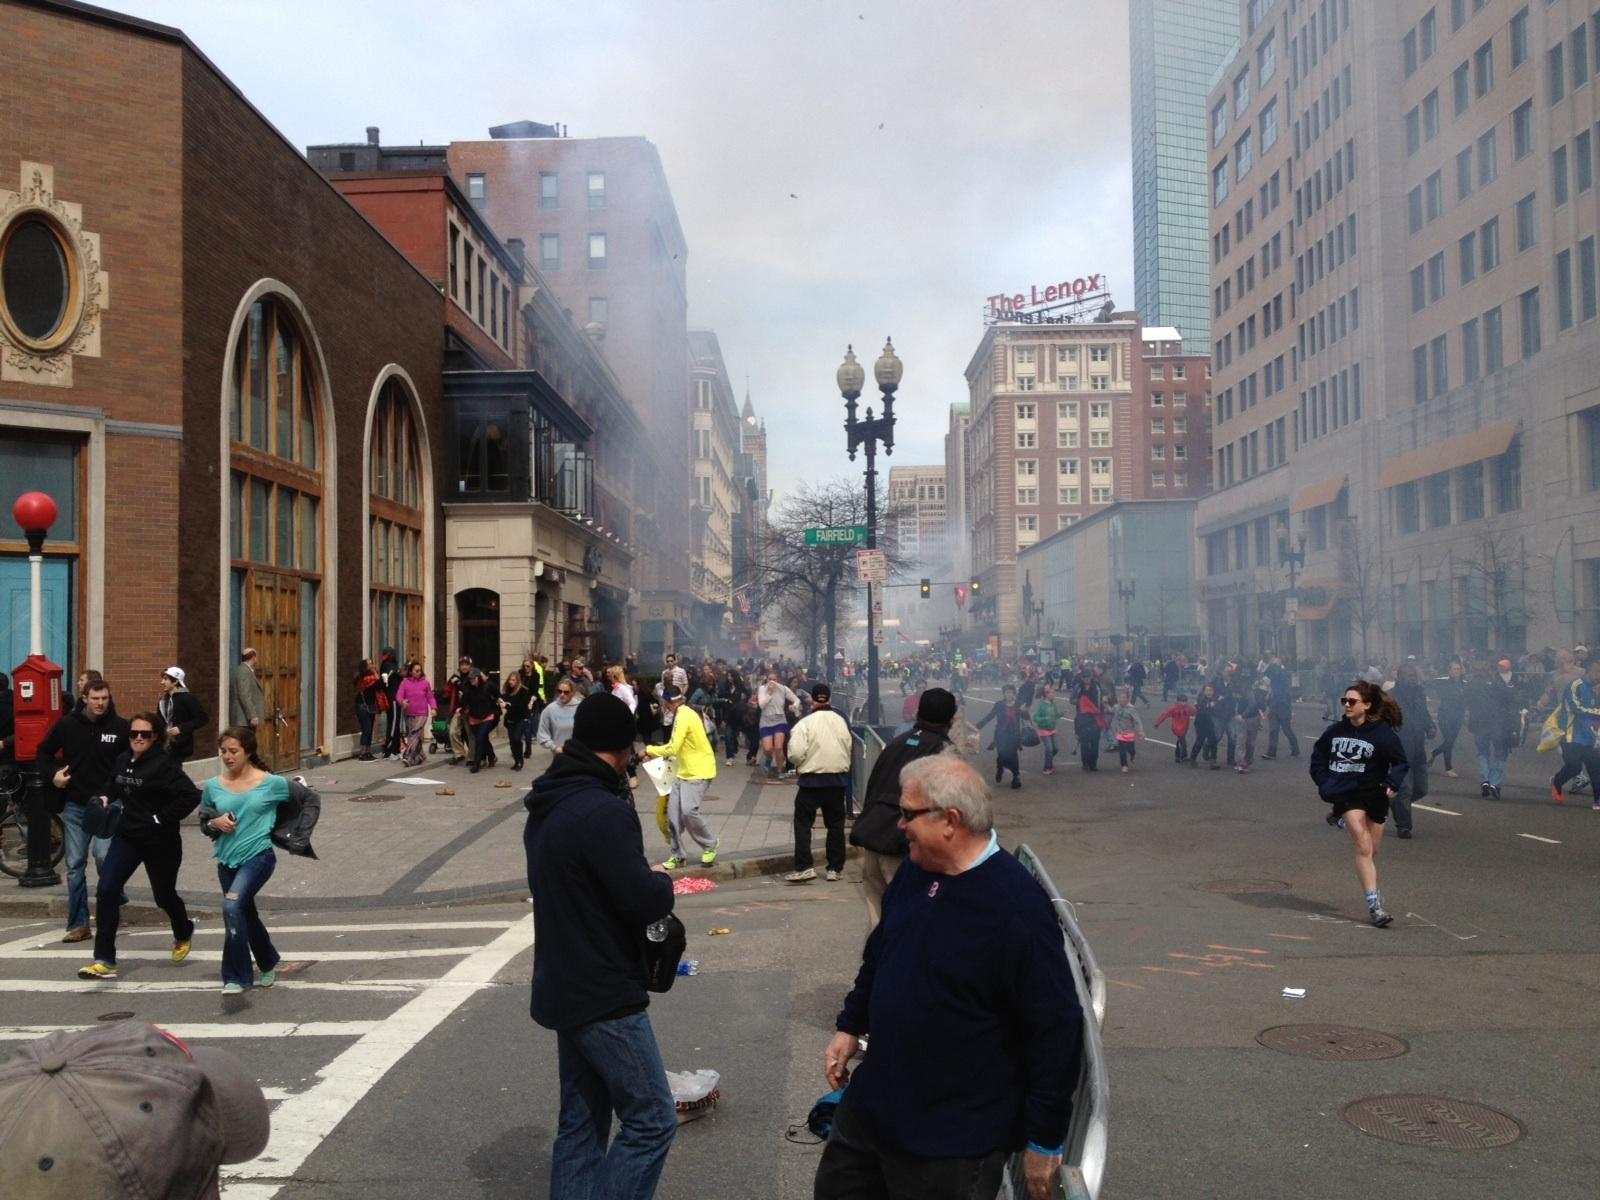 Update #2: The NY Times has a story here on this photo  and the man who took it (David Green). Picture of suspected 2012 Boston Marathon terrorist after blast without backpack. For more on this photo, please see here: https://www.letsrun.com/forum/flat_read.php?thread=5140936 This photo was NOT taken by LetsRun.com.  The original link posted by a regular LetsRun.com visitor can be found here (NSFW) on  a site with pornographic ads. People complained about the porn ads so we have uploaded the photo here.The LetsRun.com audience is discussing this photo here